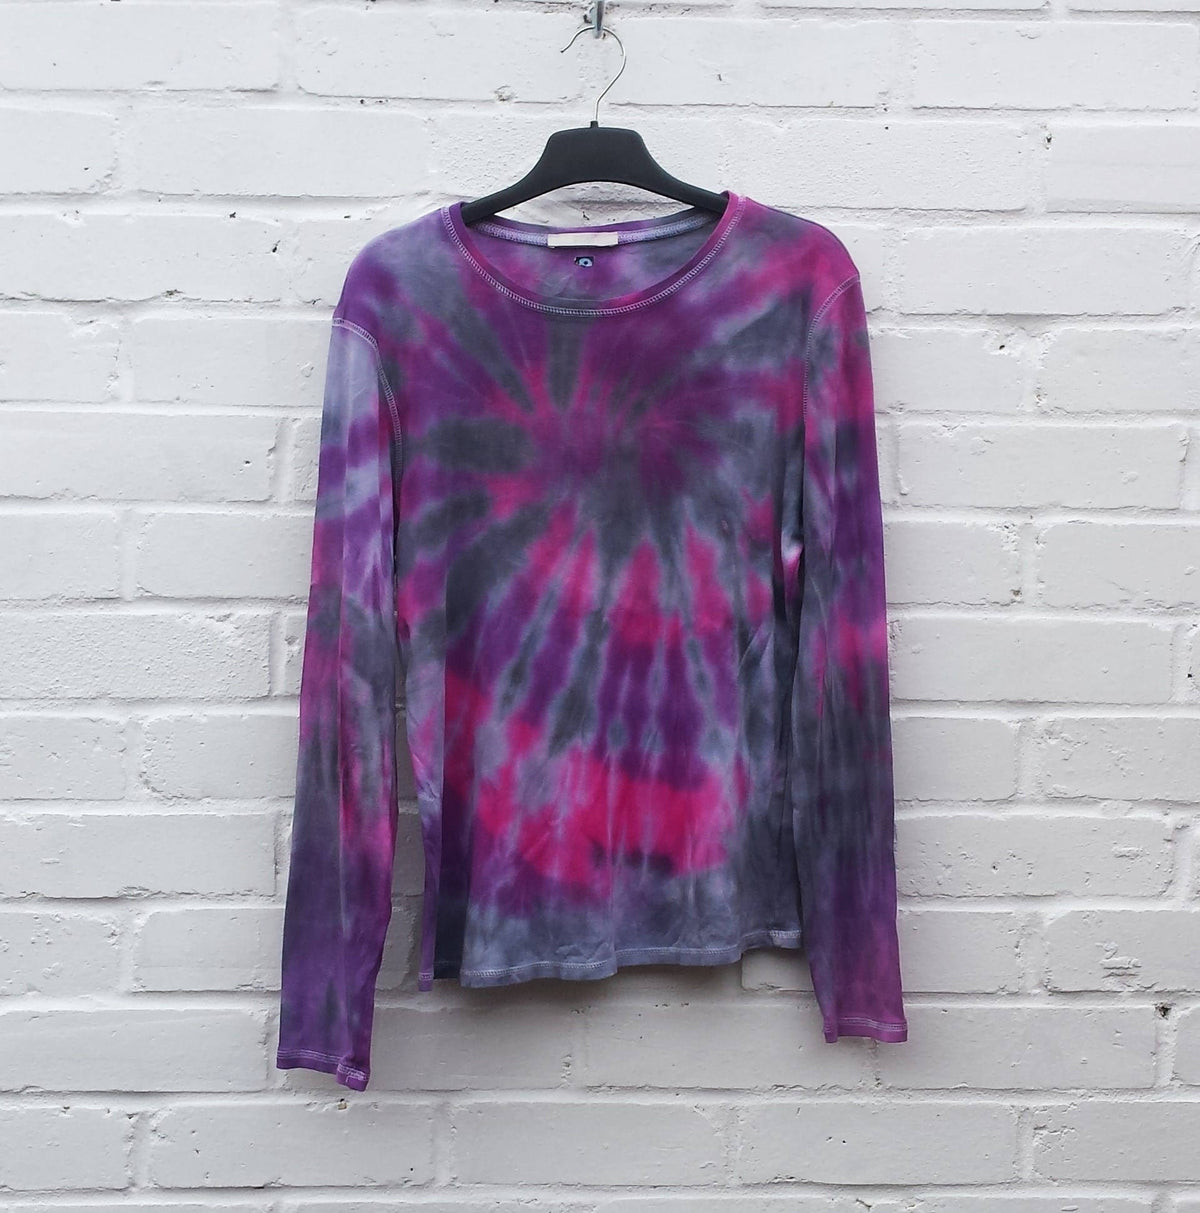 Tie Dye T-shirt ALL SIZES Hippie Clothes Festival Clothing Trippy Pink Purple Black